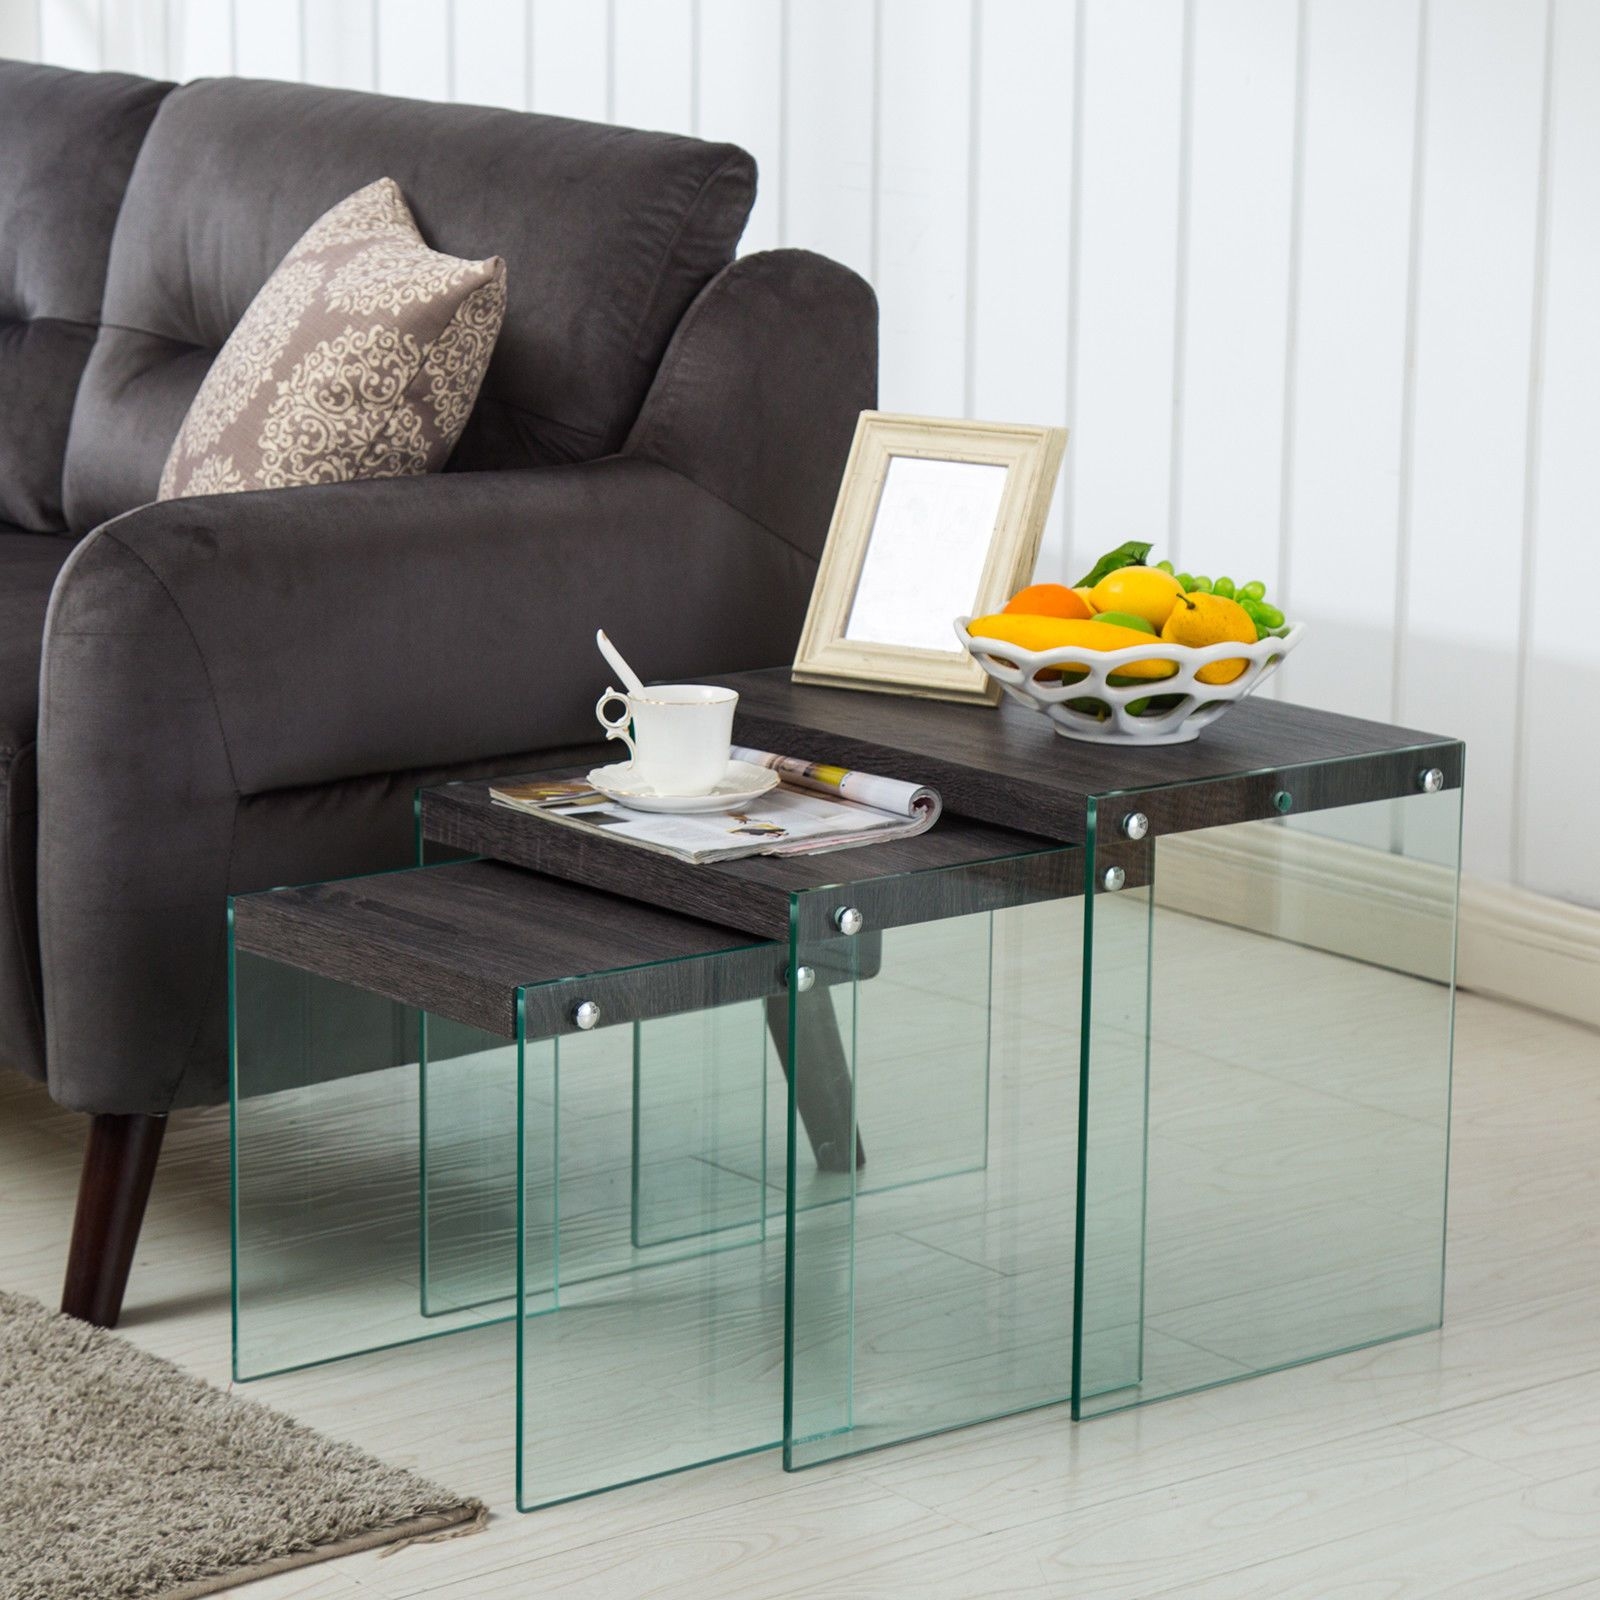 Modern nest of 3 coffee table side table end table living room furniture ebay